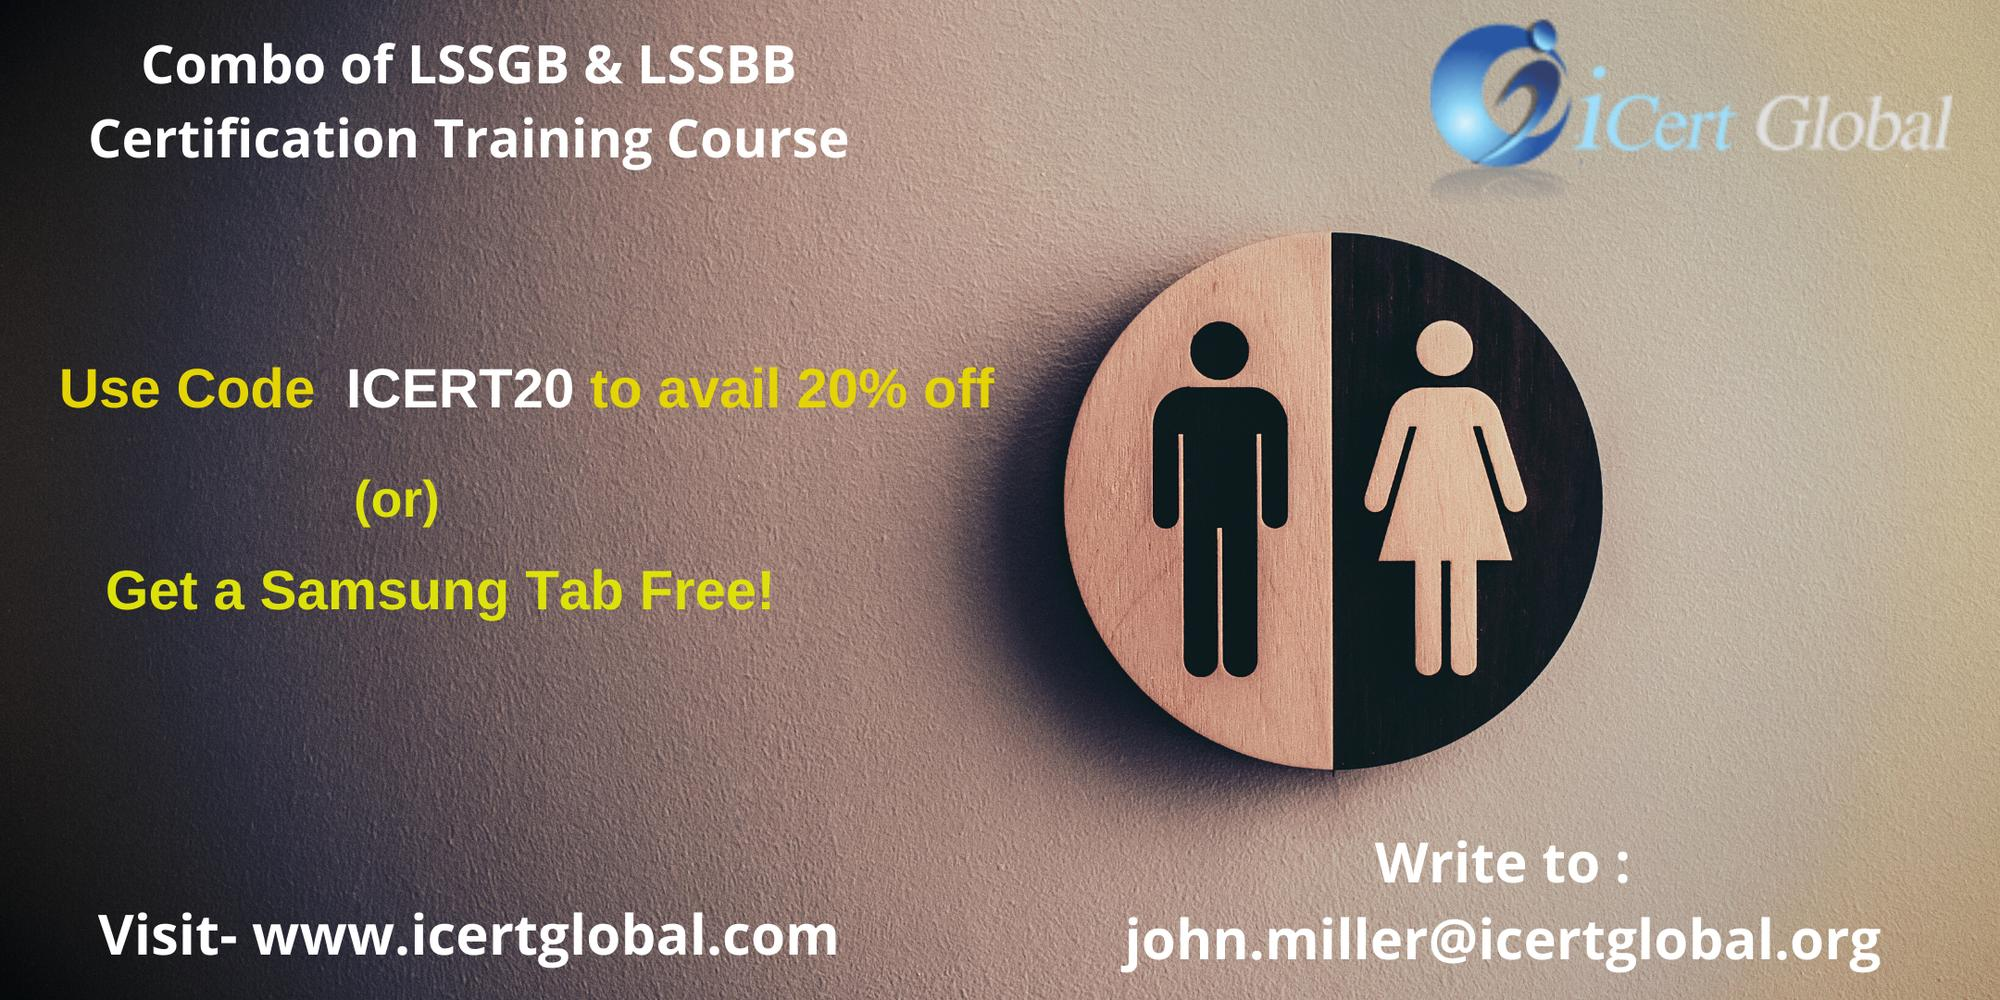 Combo LSSGB & LSSBB Certification Training in Tampa, FL